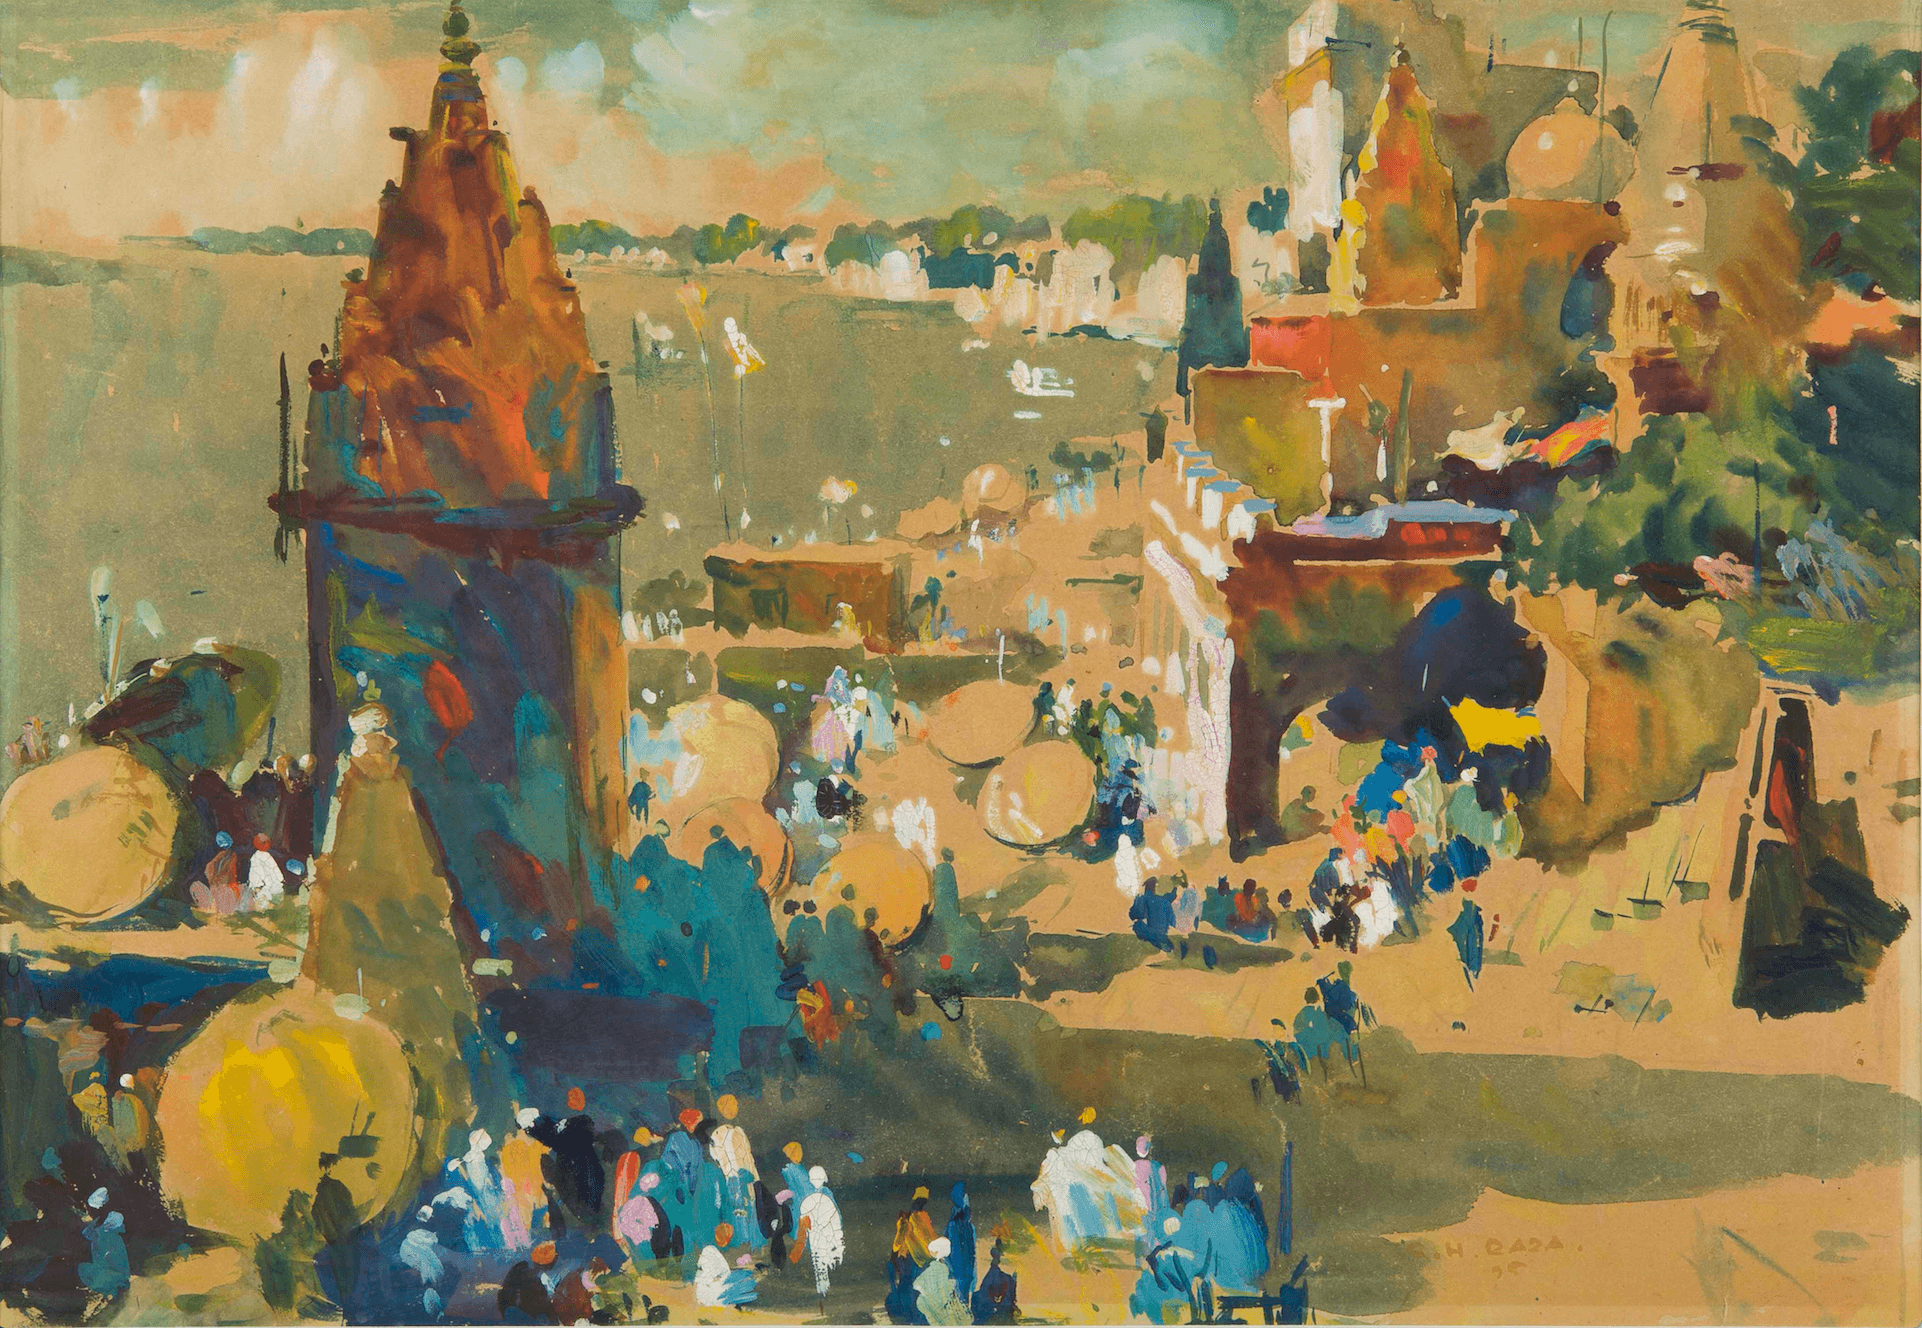 Abstract painting of a coastal town by Indian modernist painter S.H.Raza